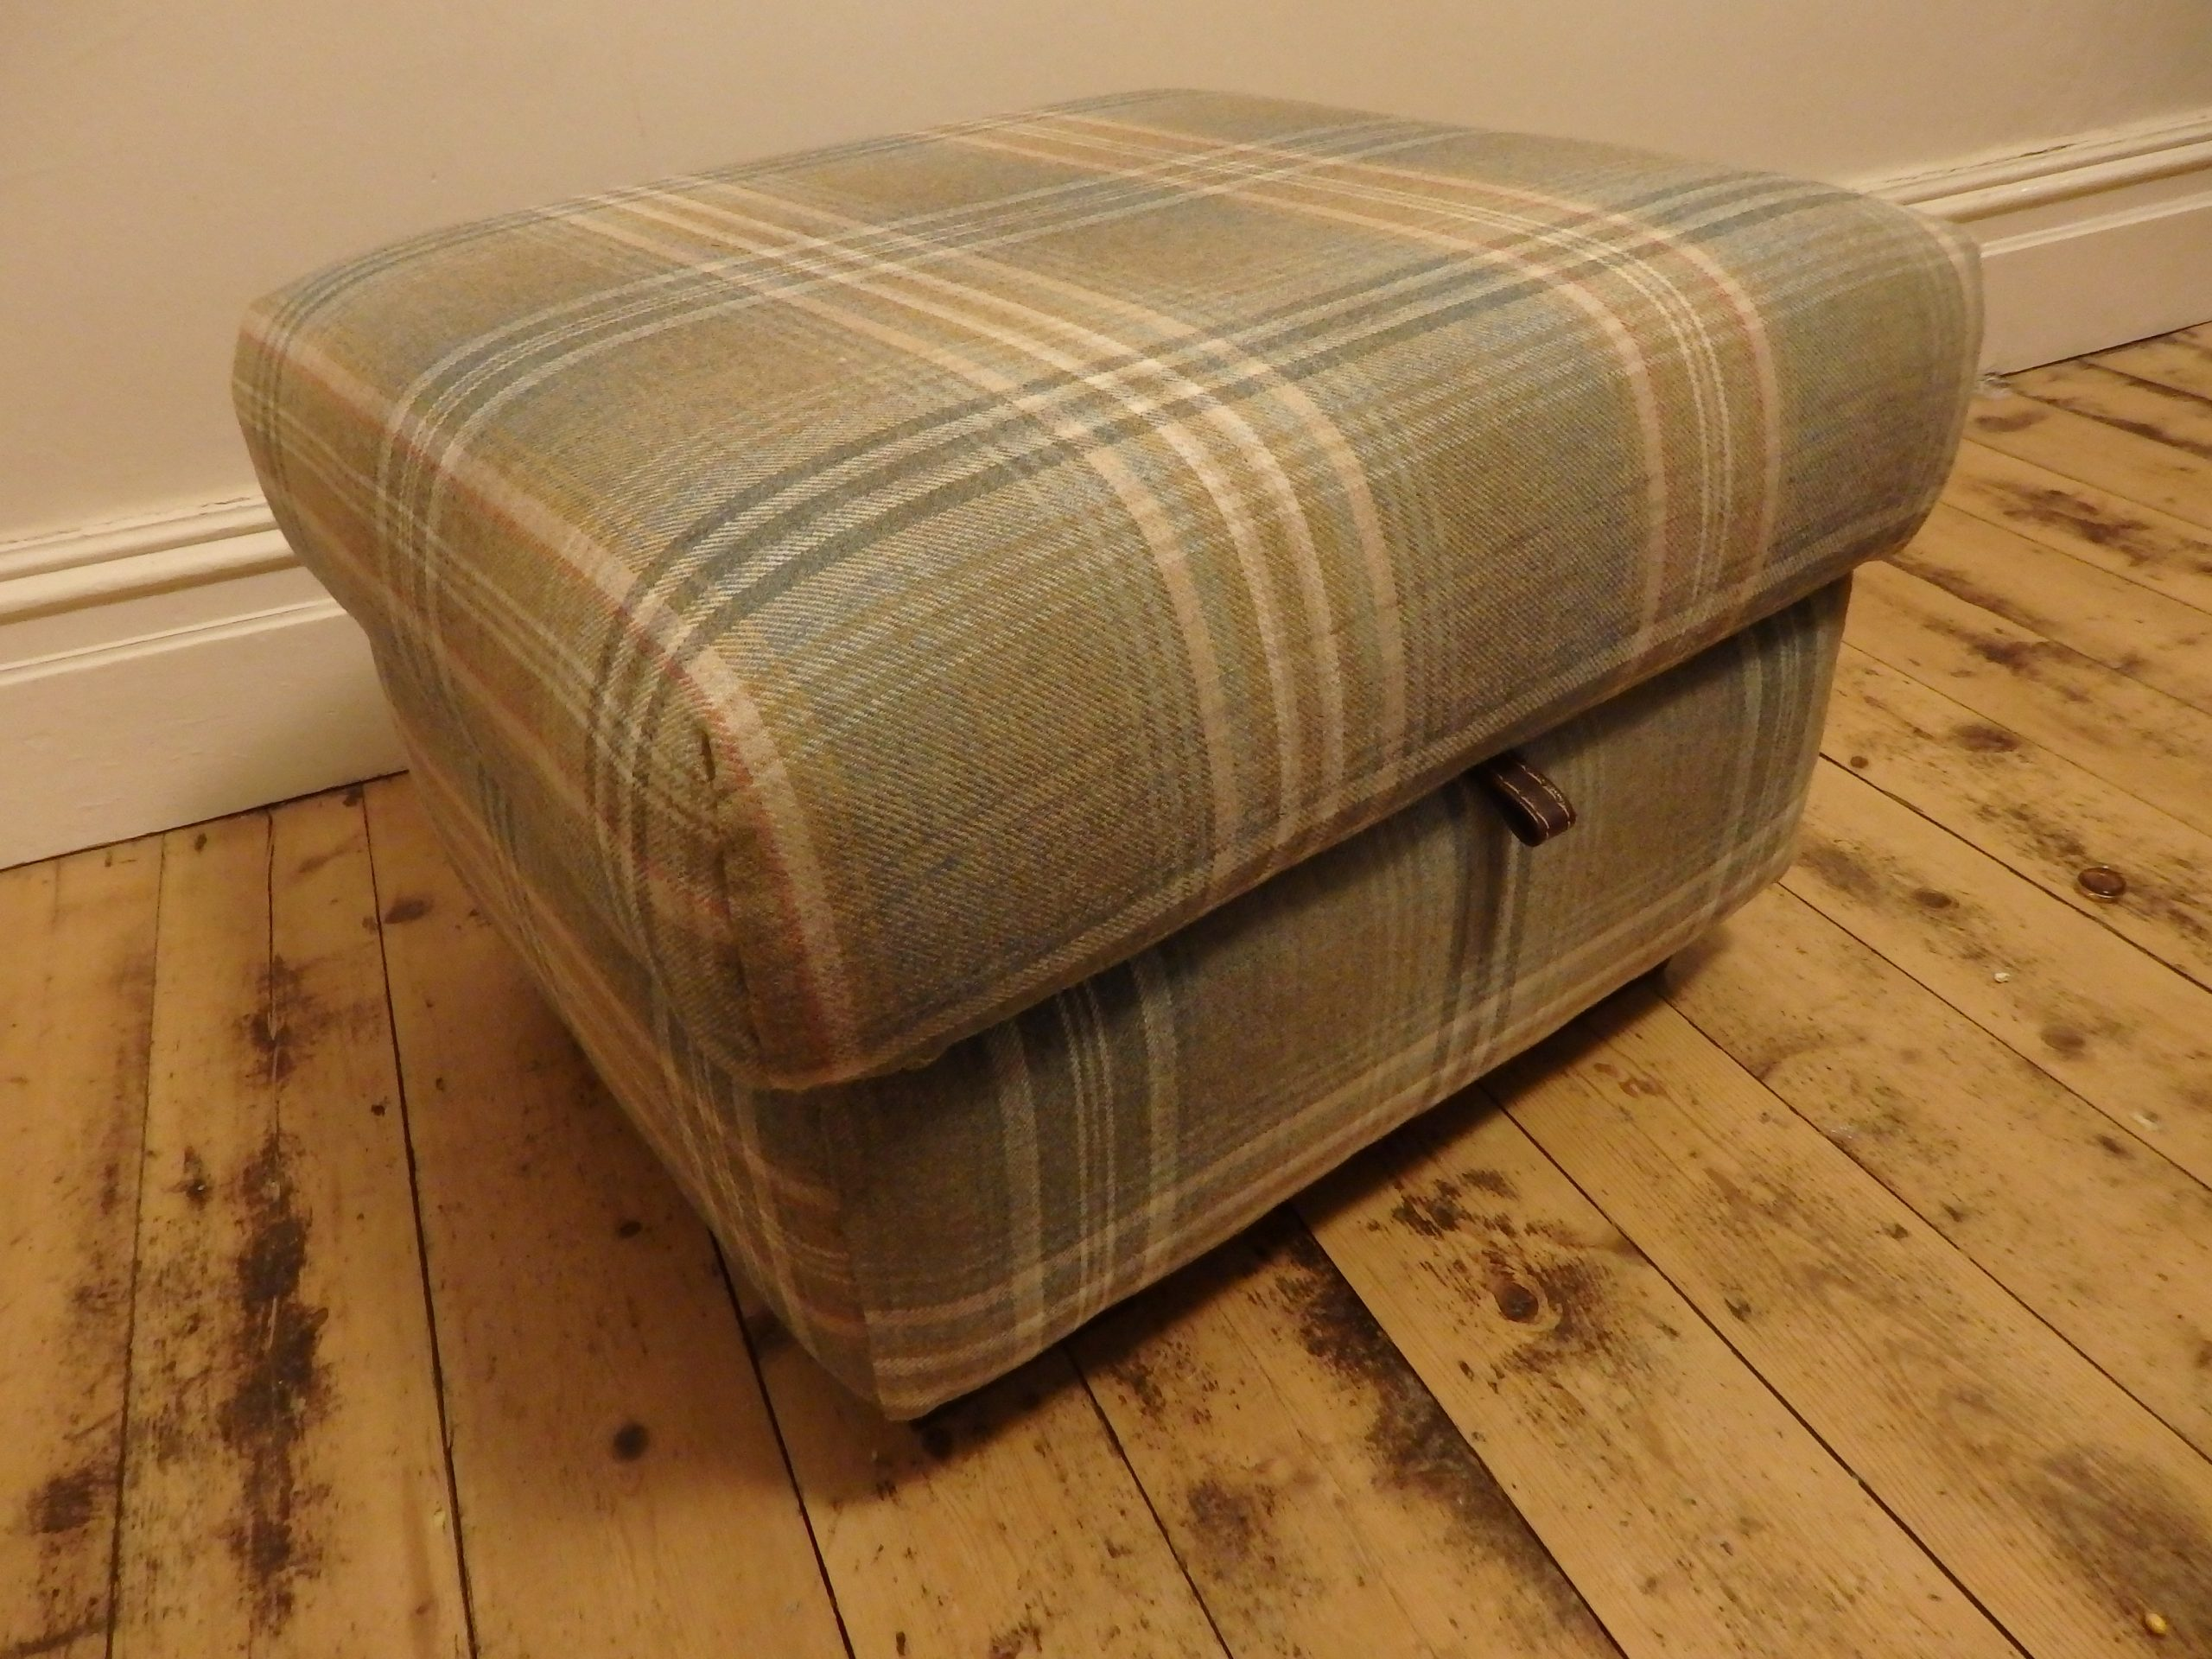 Re-Covered Ottoman